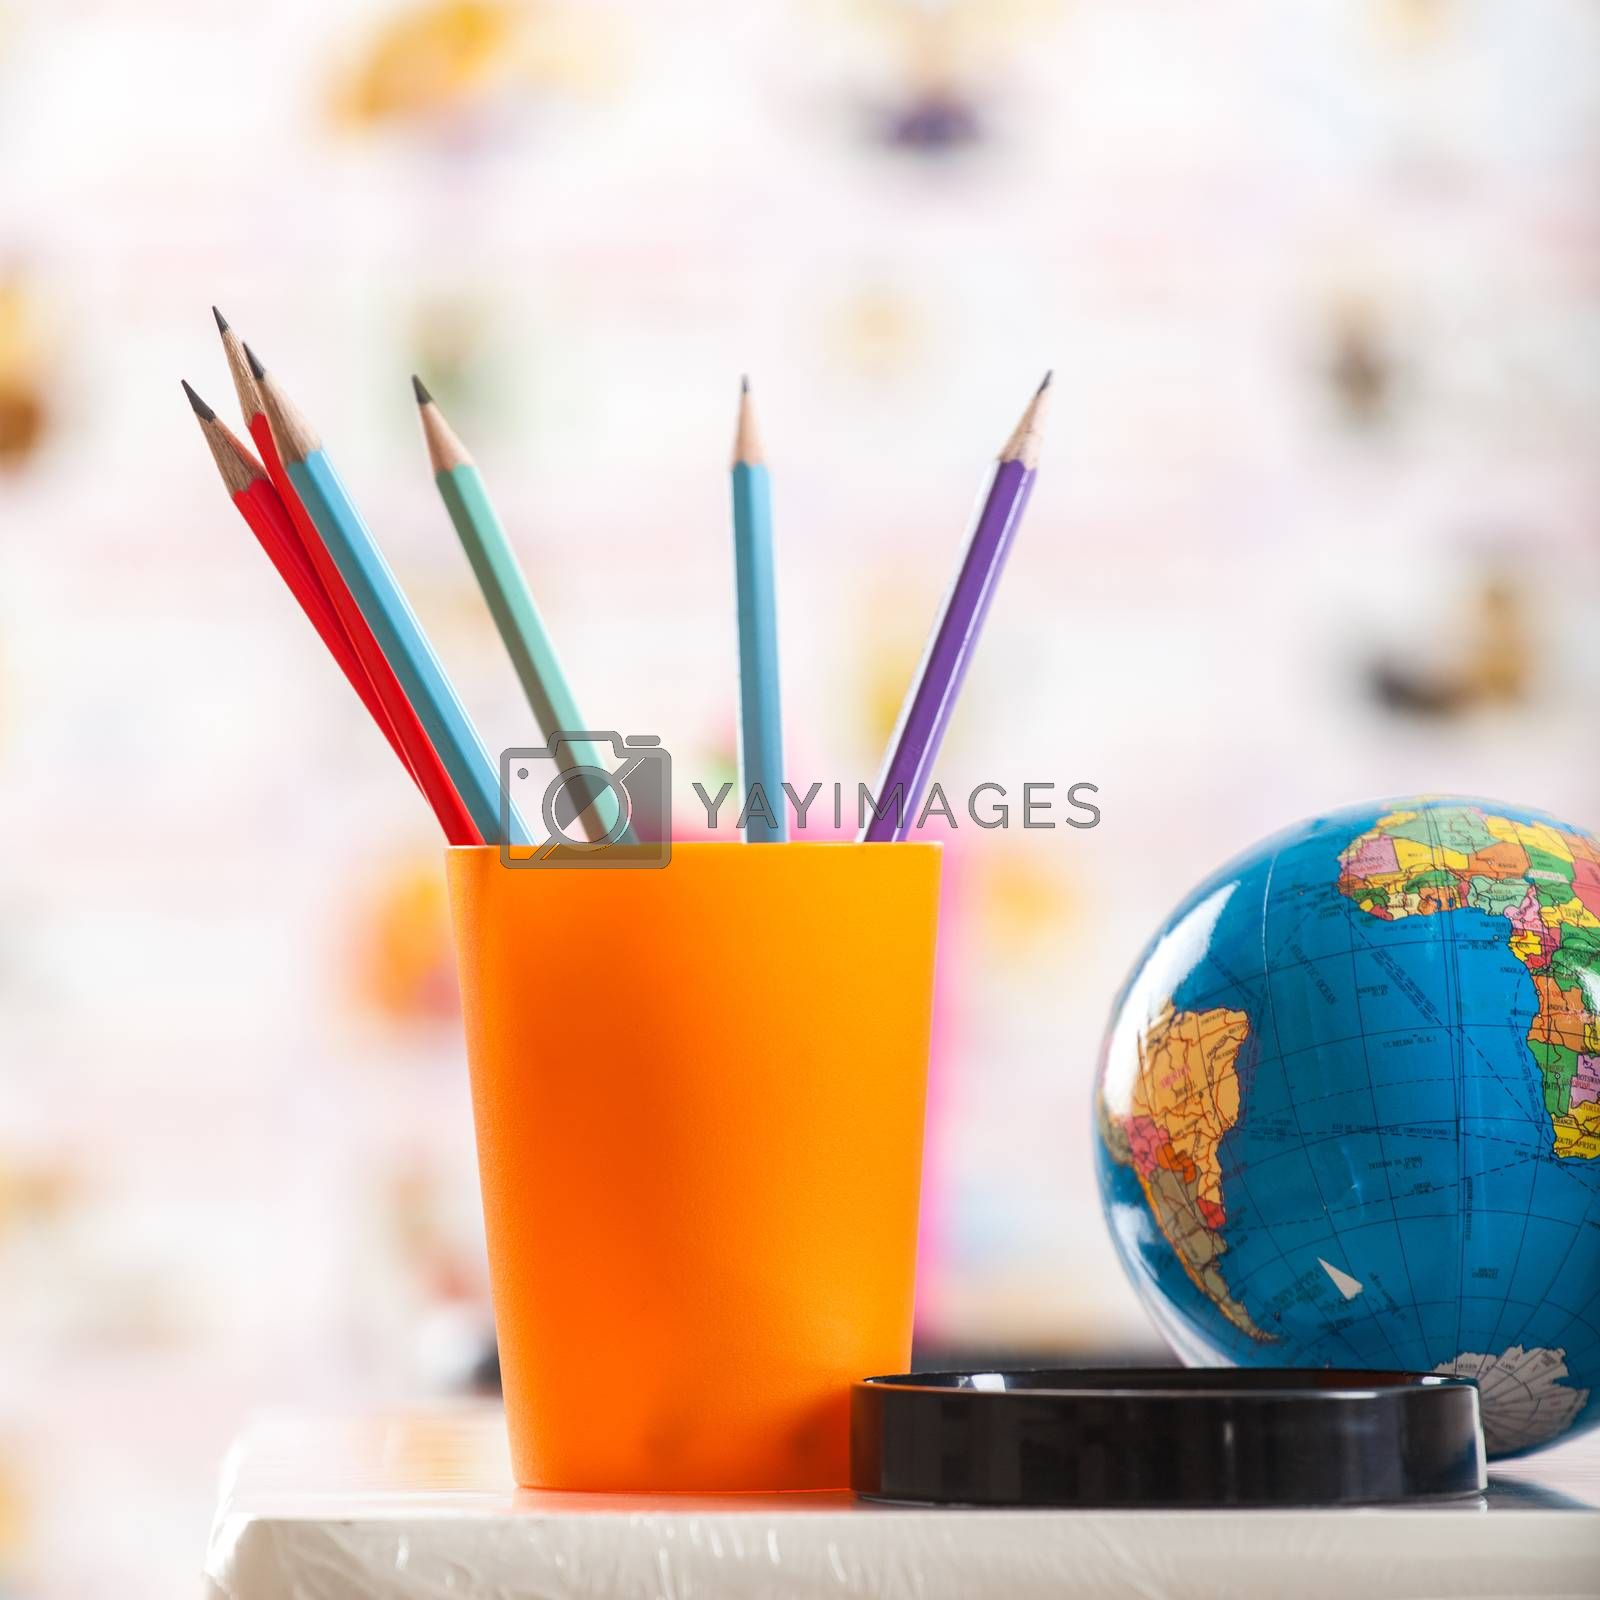 Pencils, globe and book on table